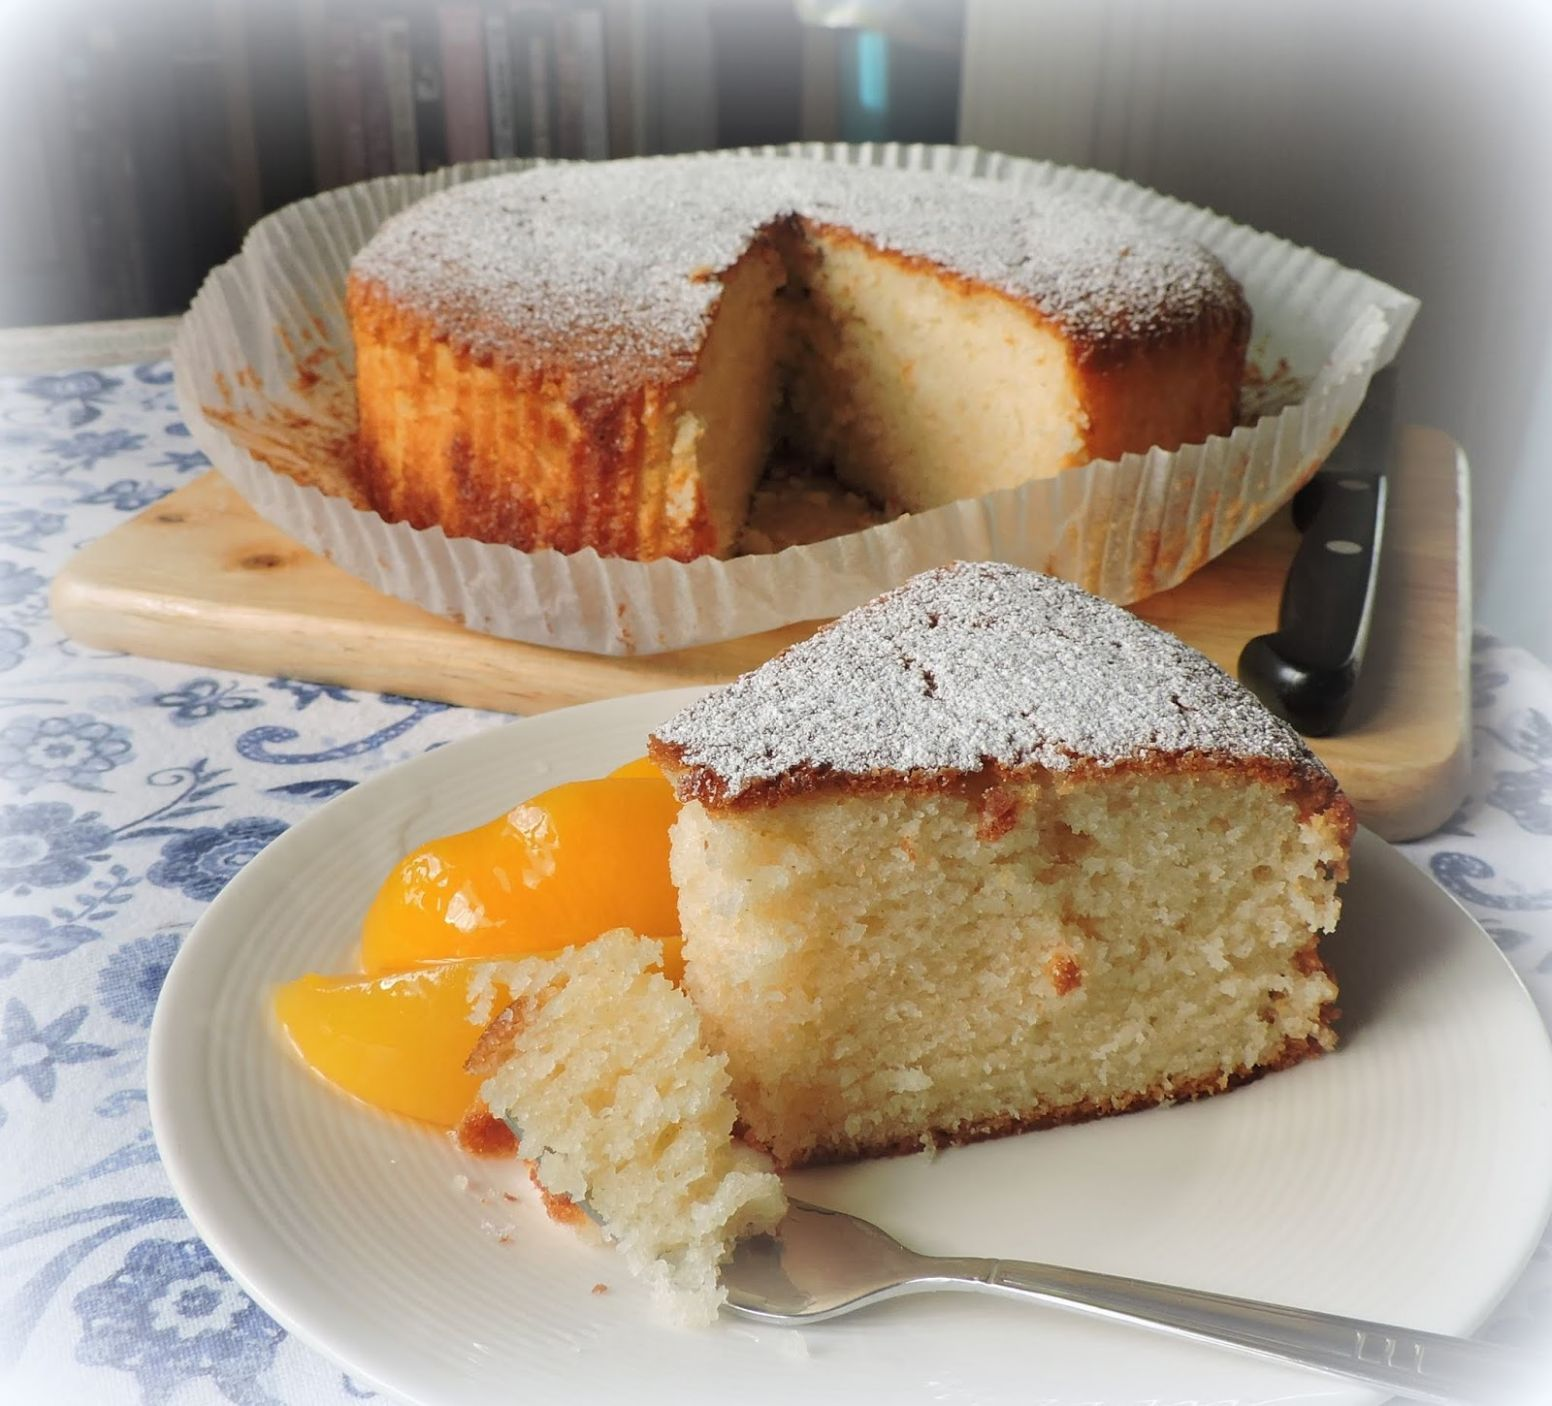 Lemon & Yogurt Cake